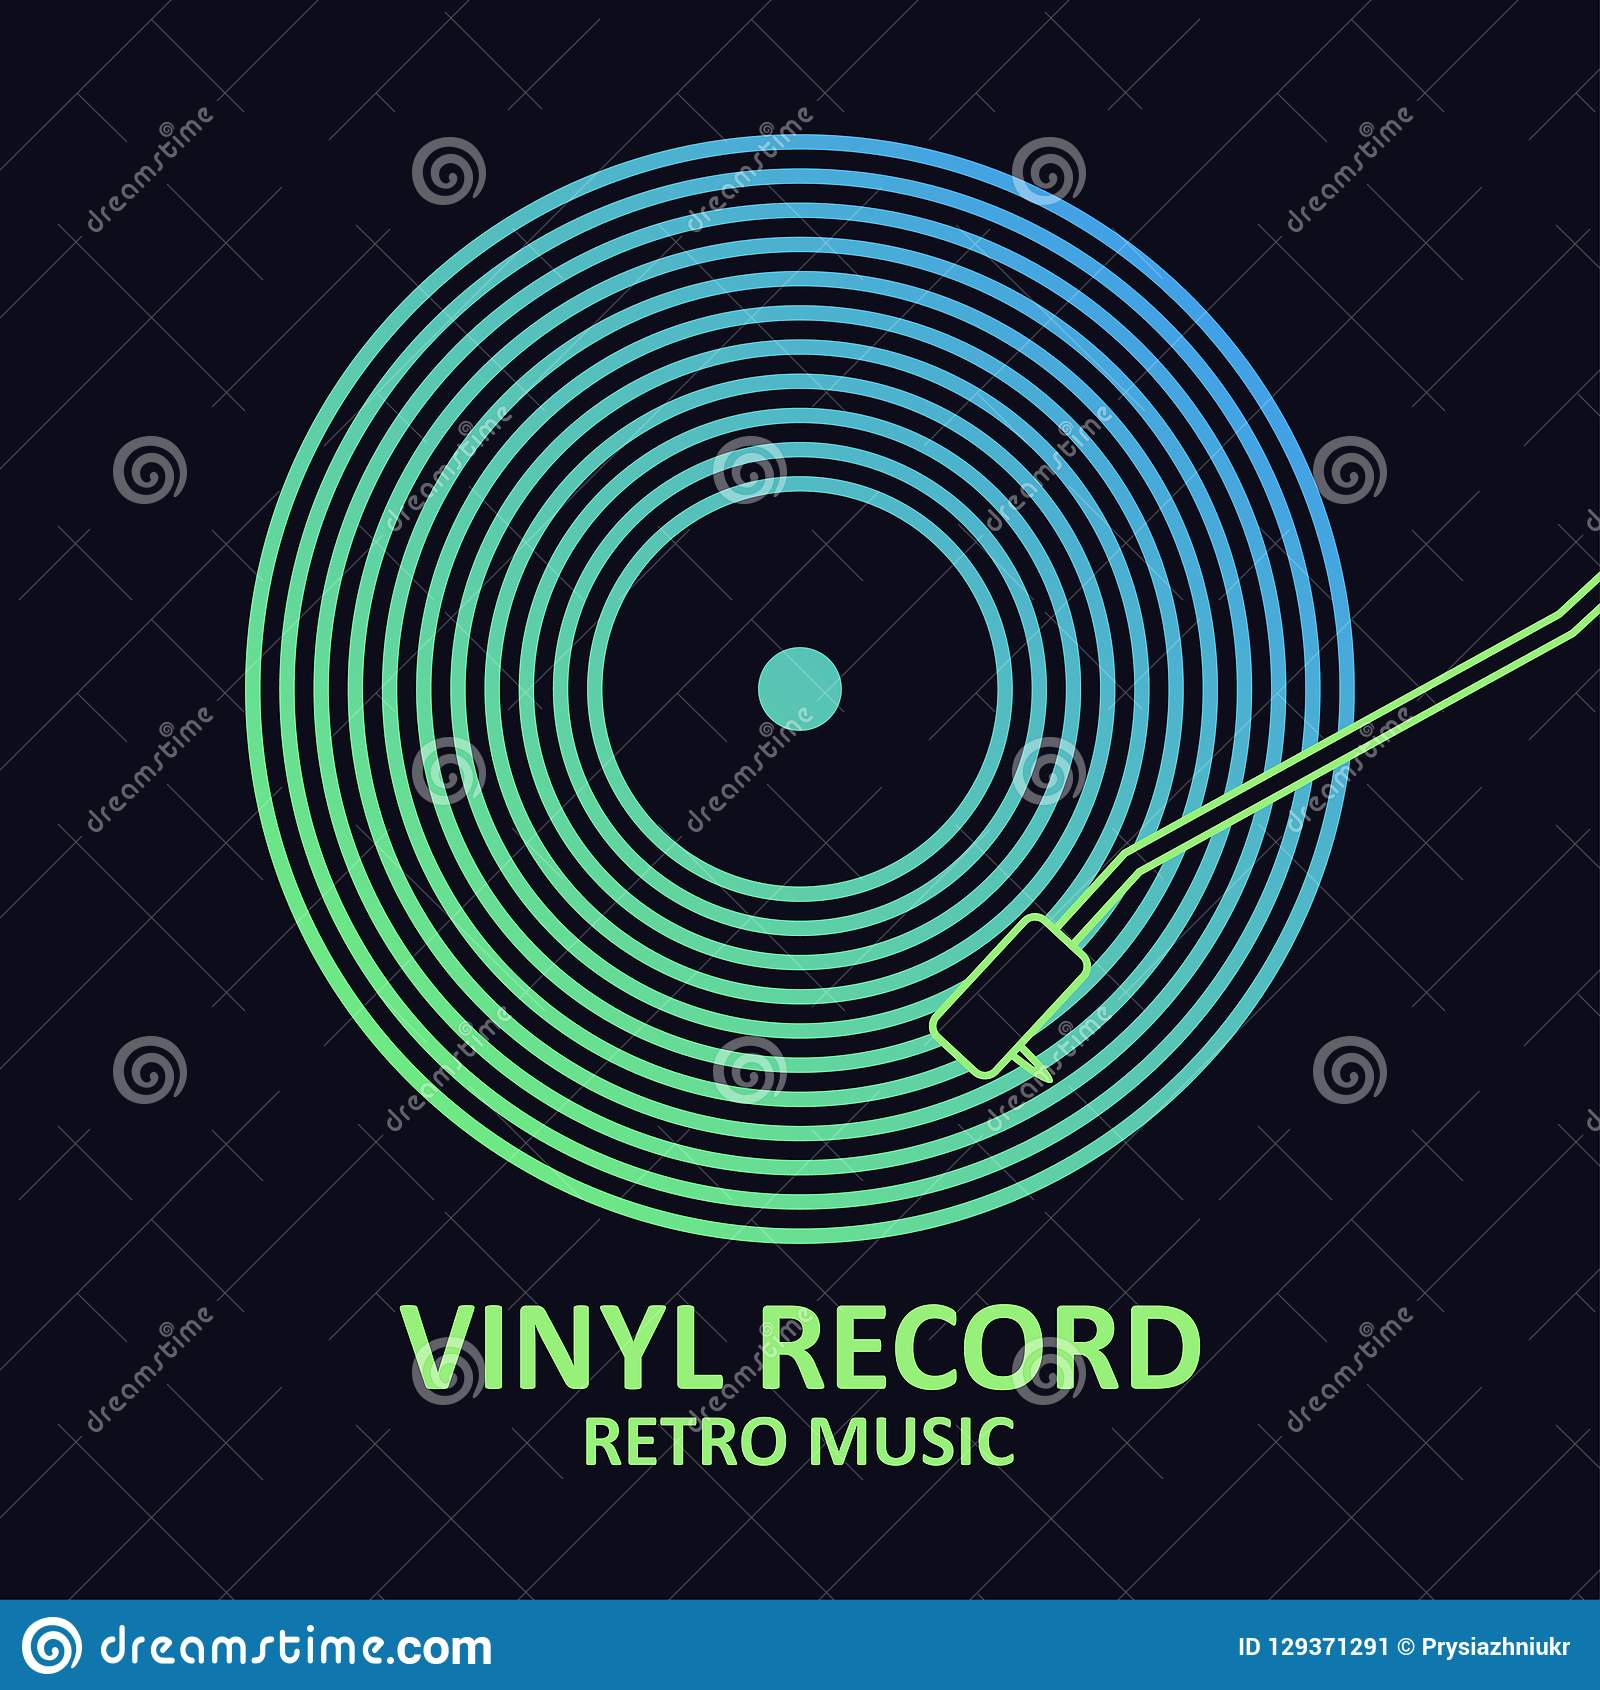 Vinyl record. Music poster with vinyl disc. Design for musical cover or logo. Vector.